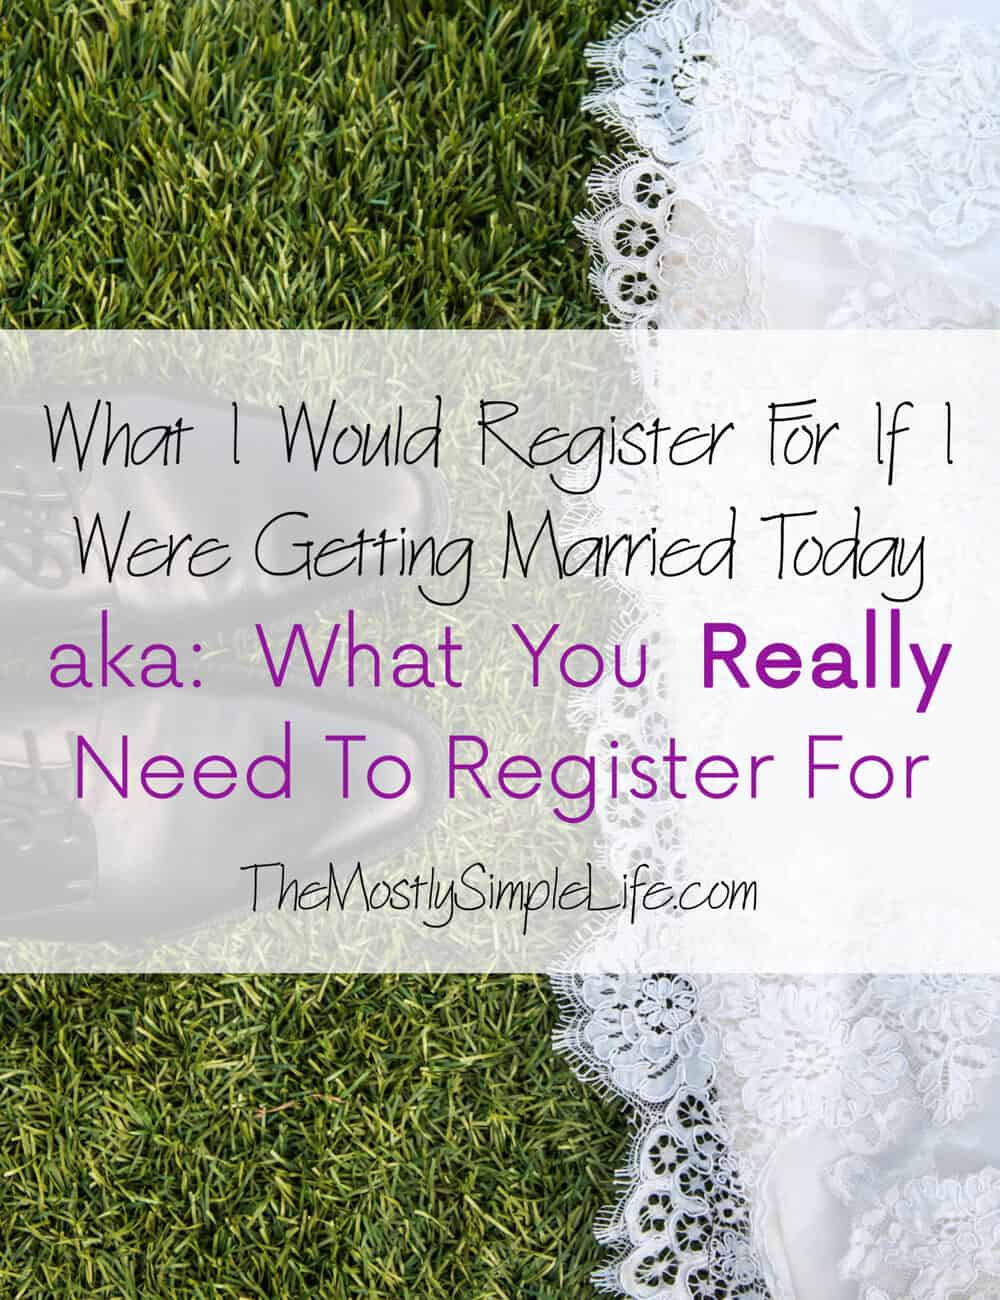 What To Register For Wedding.What You Really Need To Register For Kitchen Stuff The Mostly